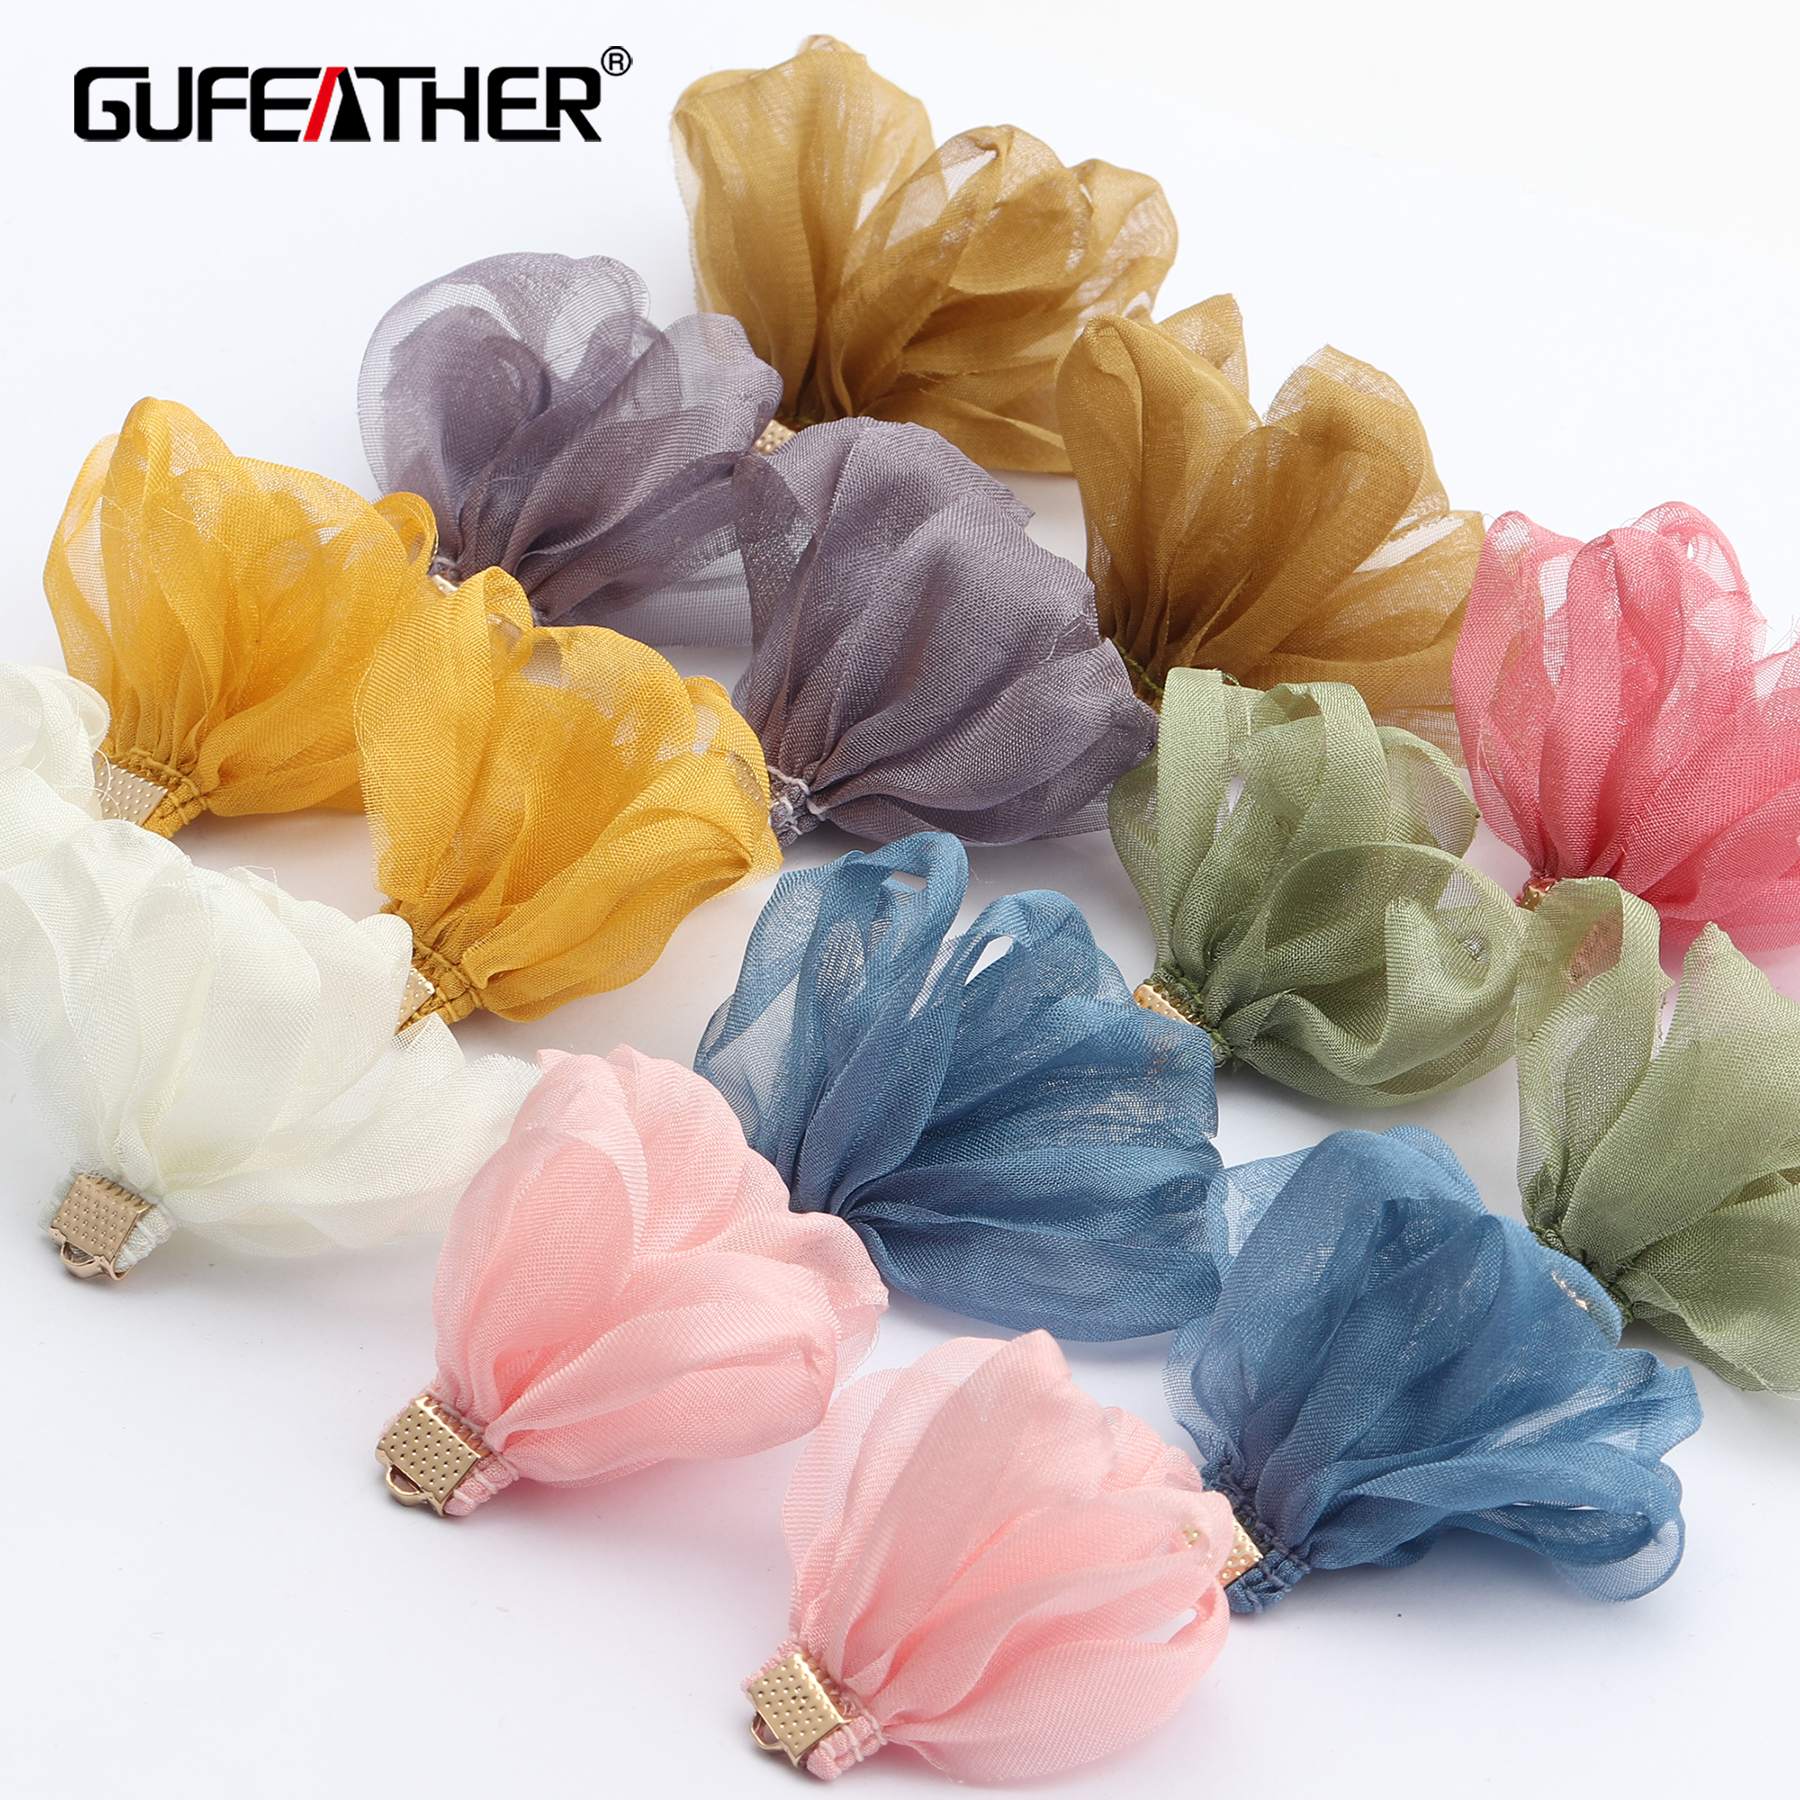 GUFEATHER F147,jewelry Accessories,diy Pendant,flower Shape,hand Made,jewelry Findings,diy Earring,jewelry Making,10pcs/lot